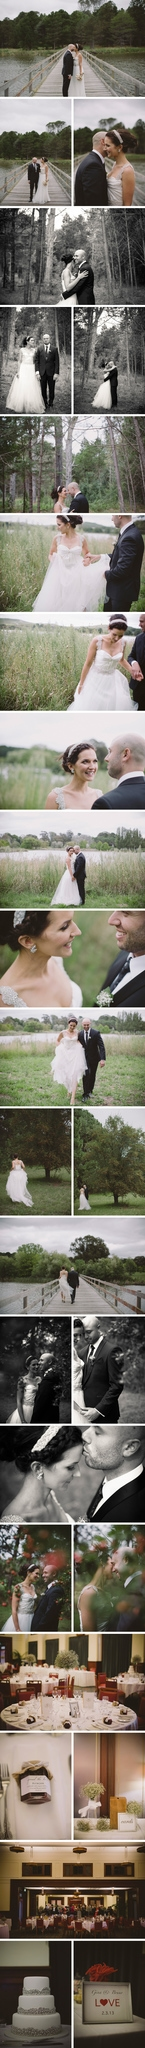 Canberra Old Parliament House Wedding Photos